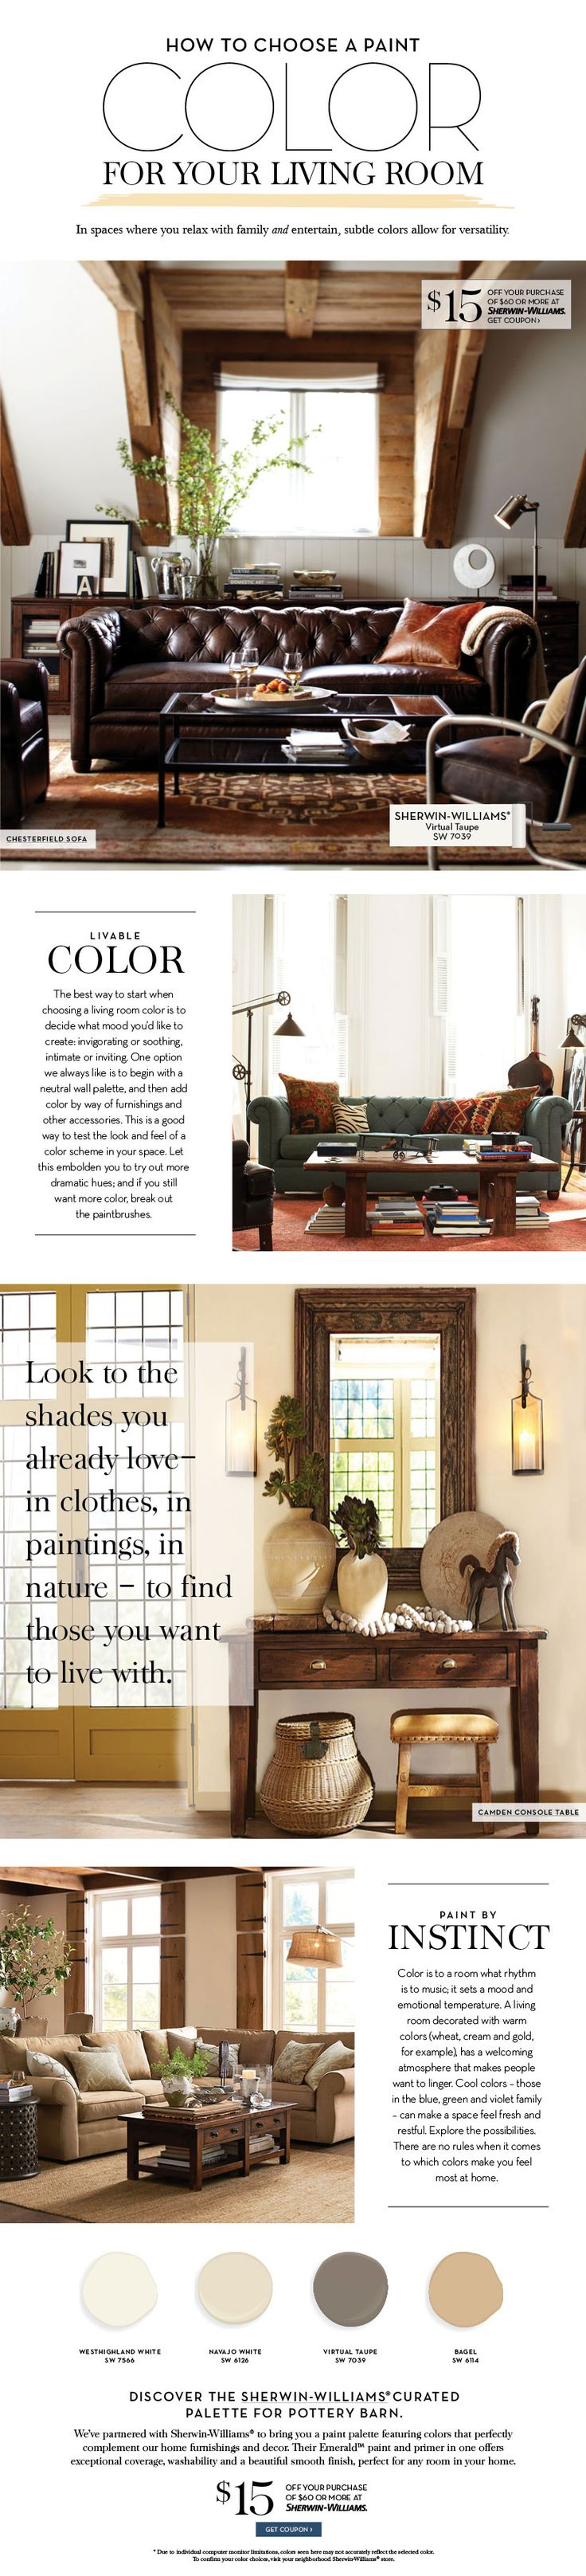 Like the entry table with stool under. Choose a Paint Color For Your Living Room   Pottery Barn